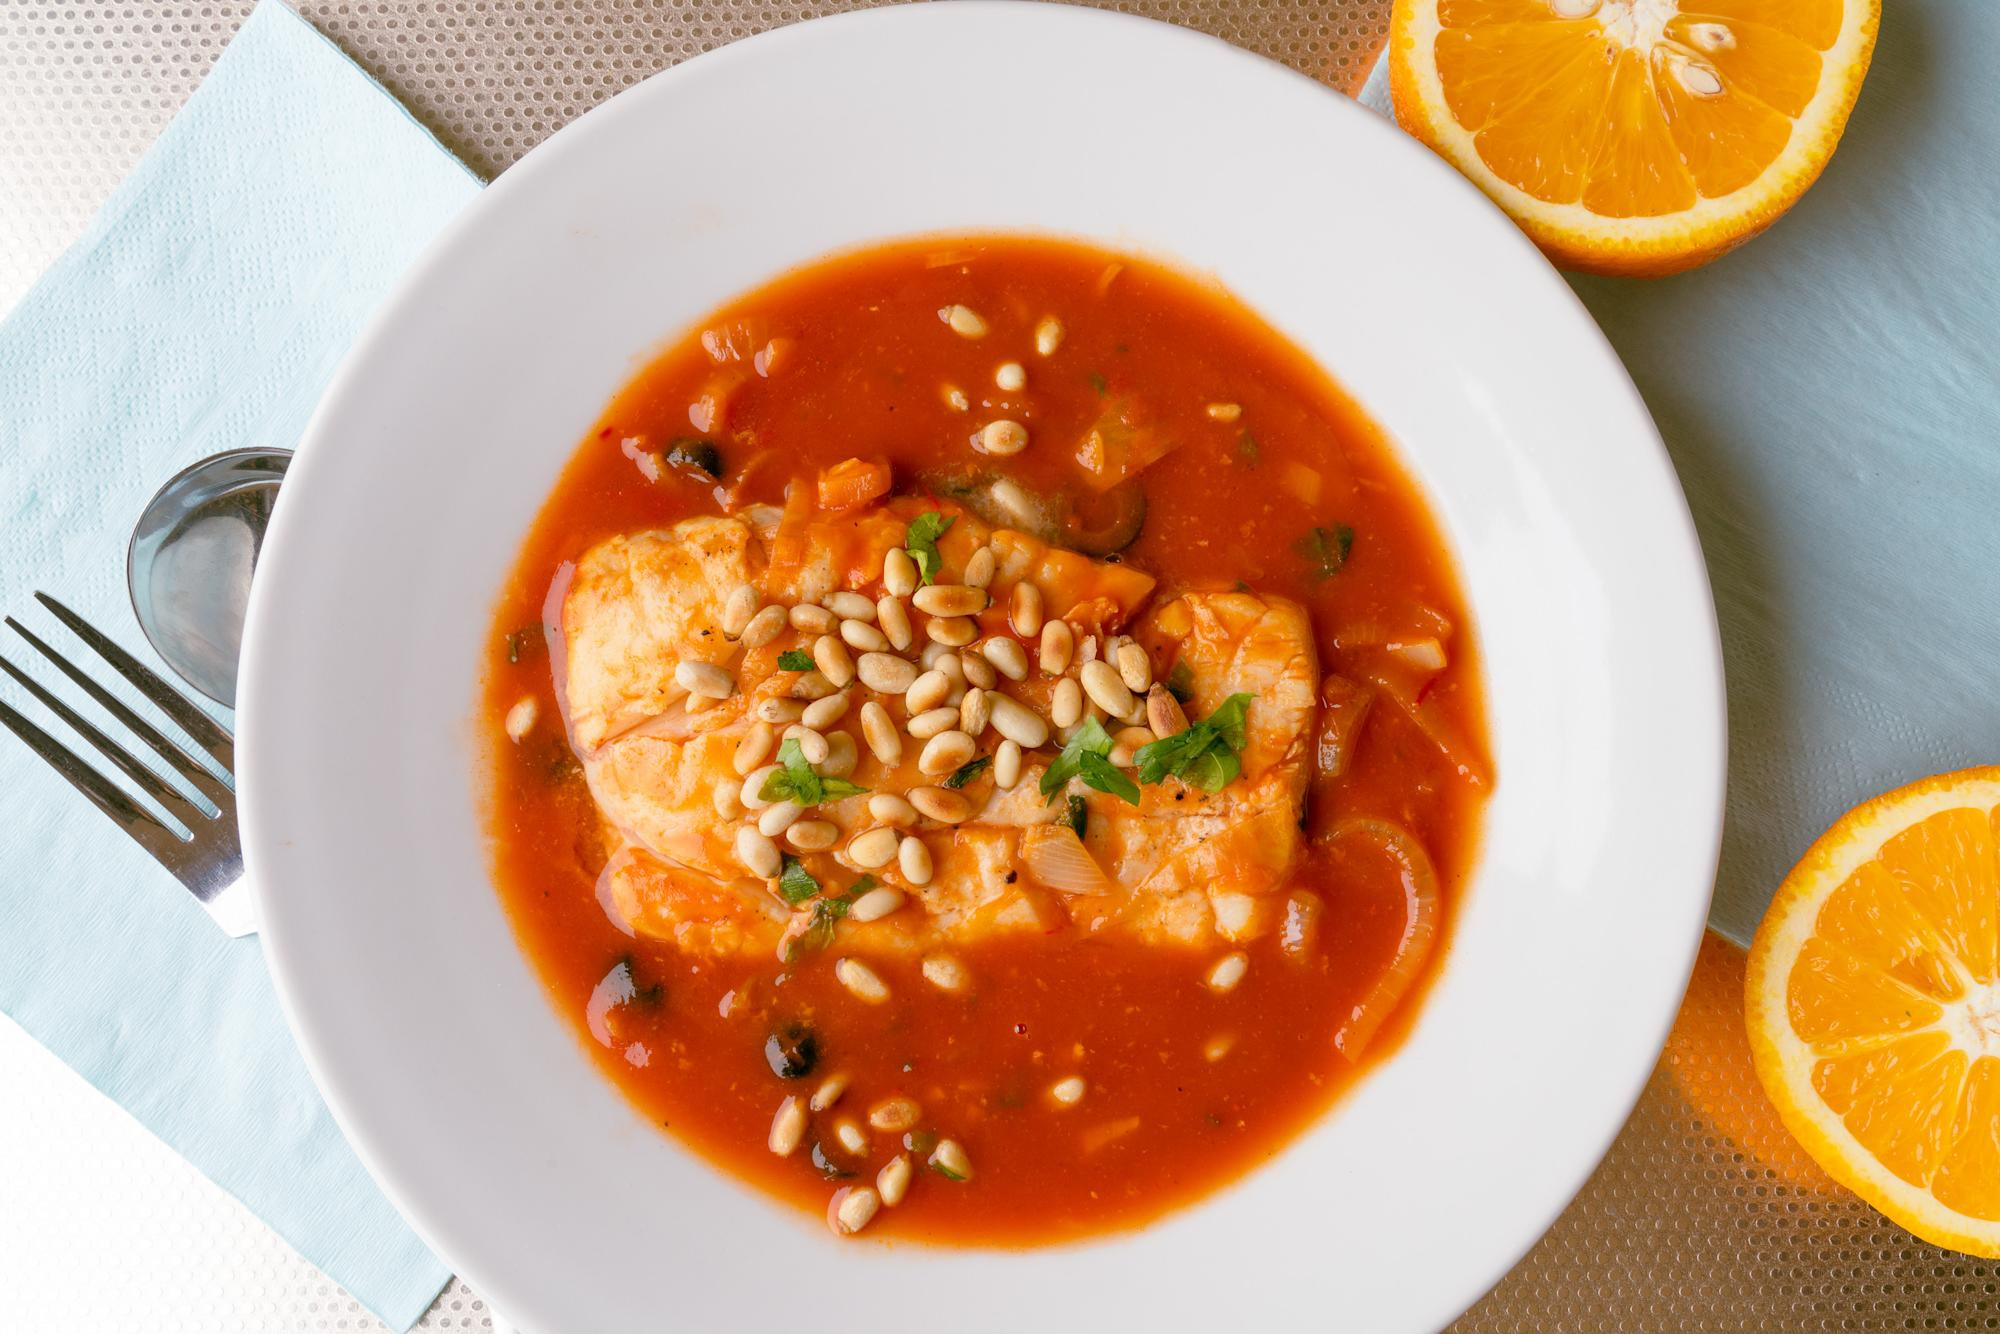 Mediterranean recipes: From Greek-style veg burgers to Provencal fish stew